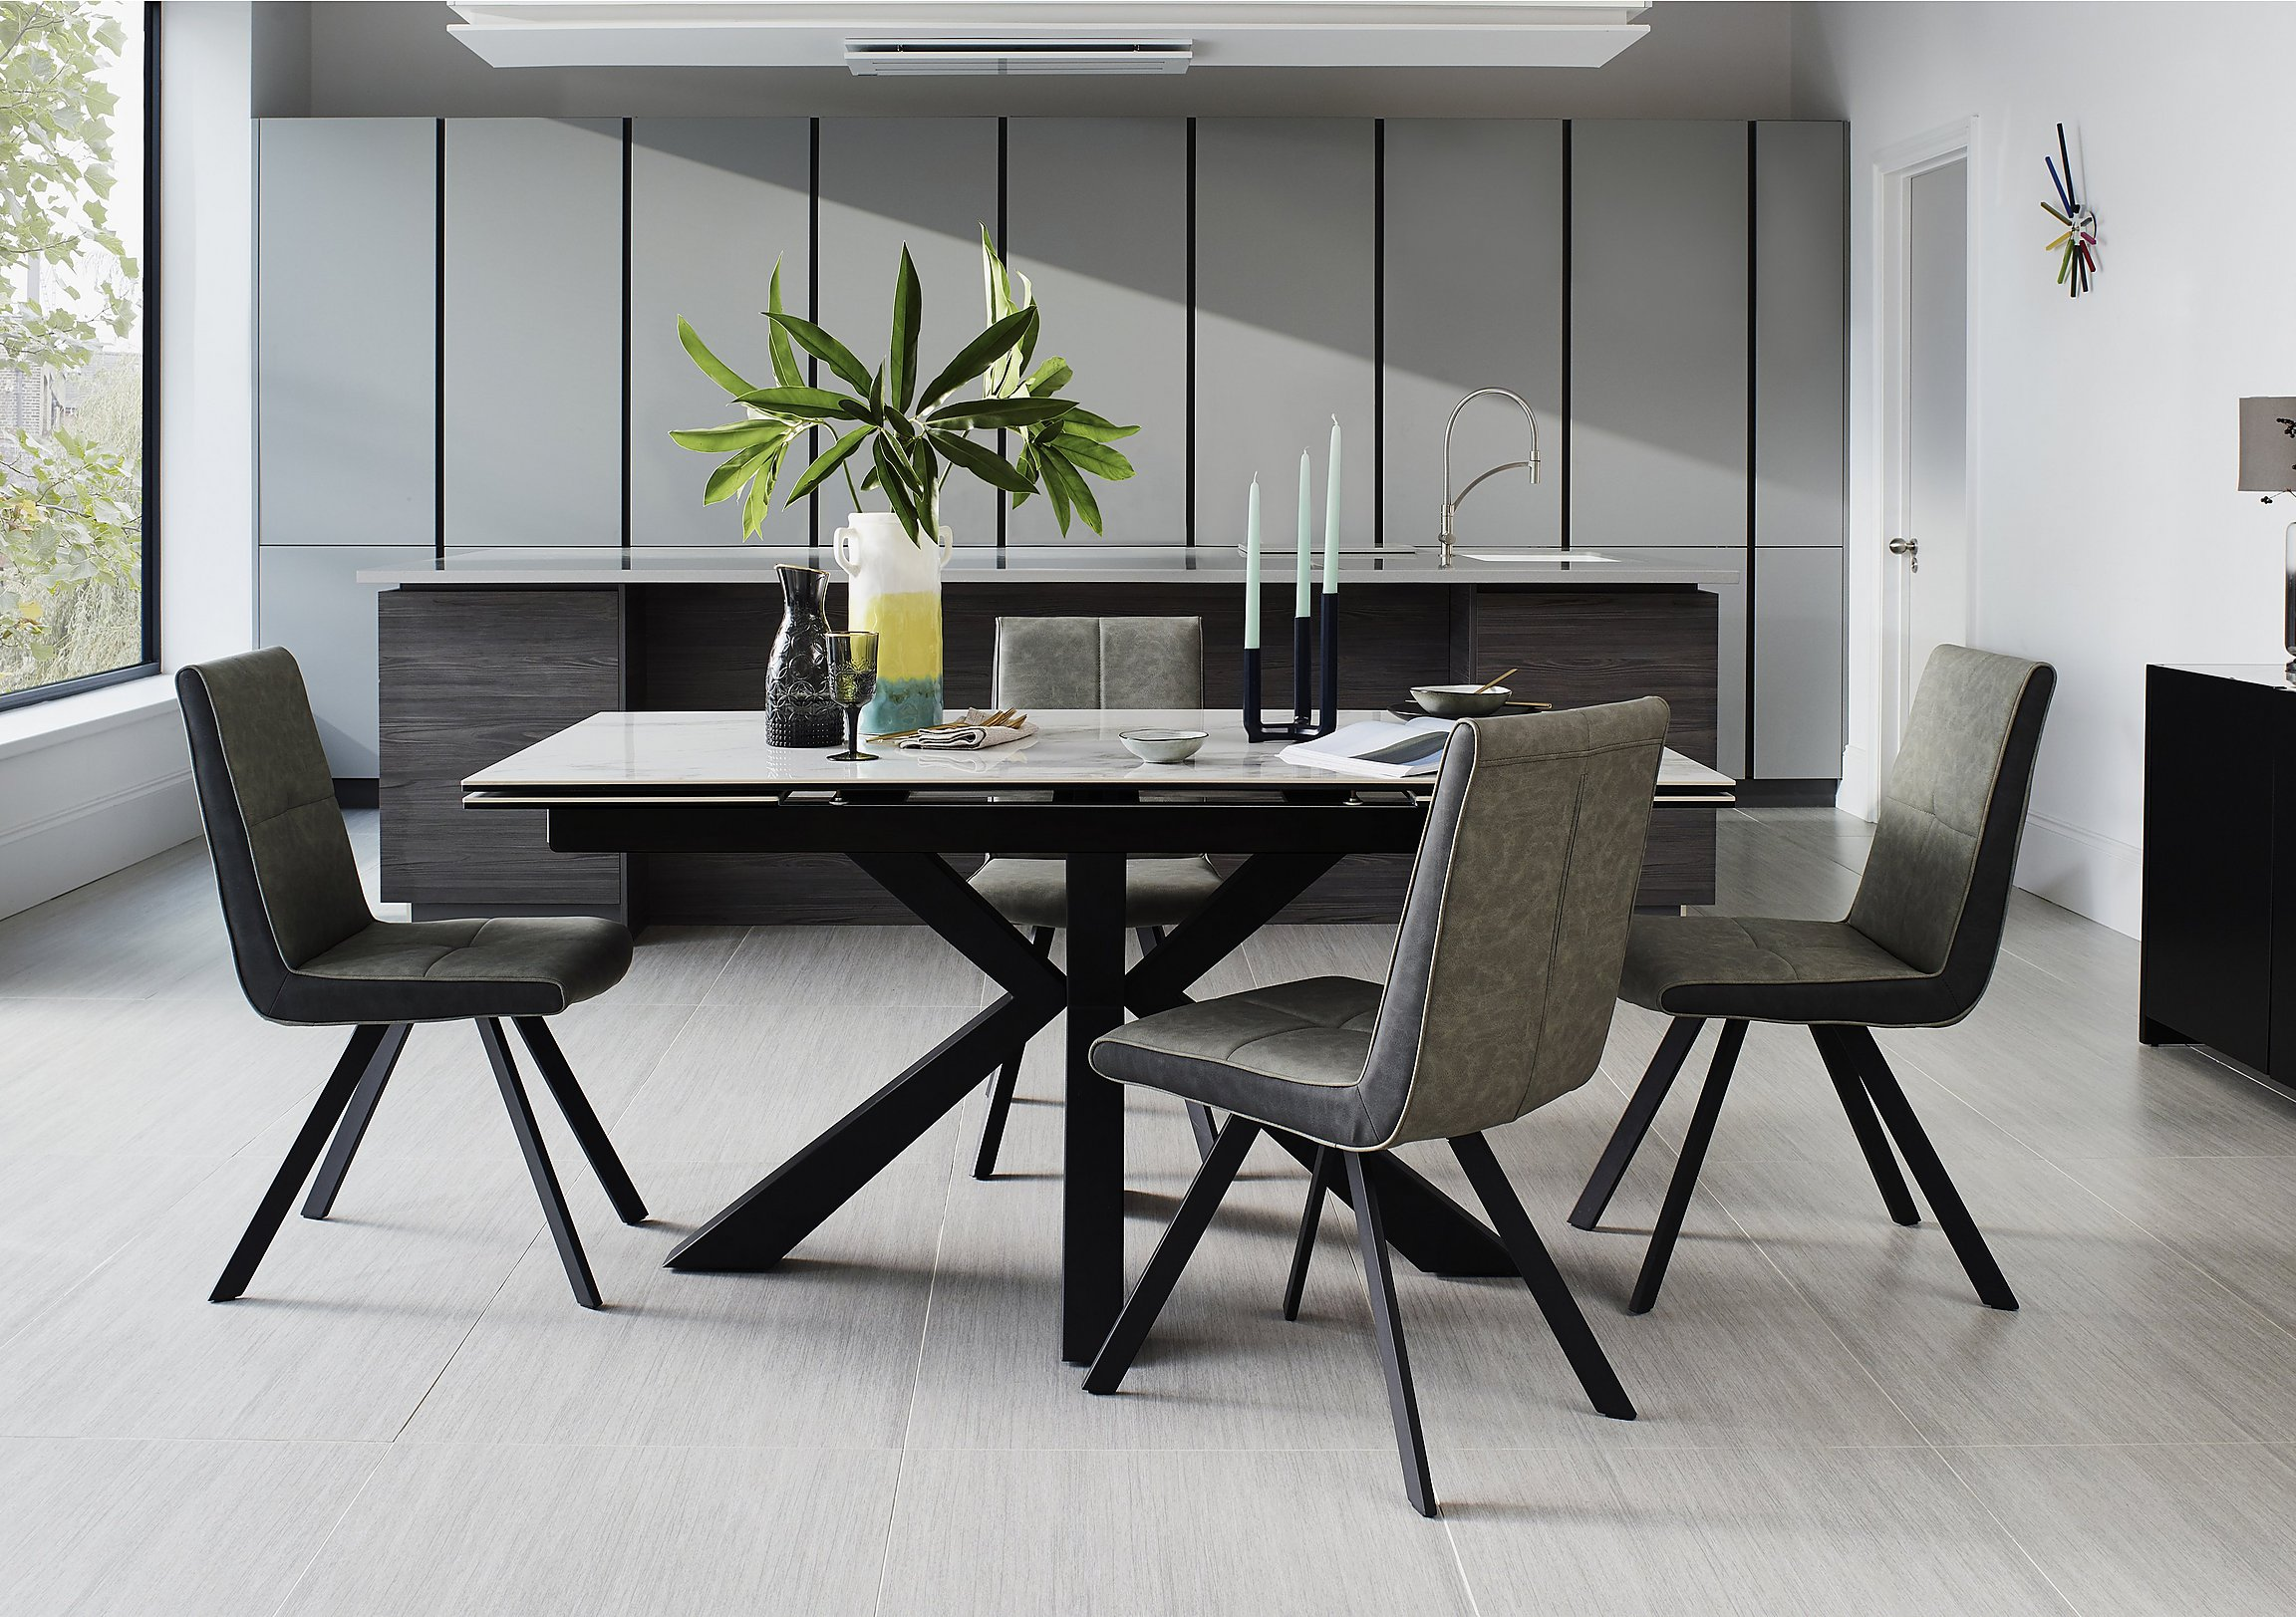 Phoenix Dining Table And 4 Chairs